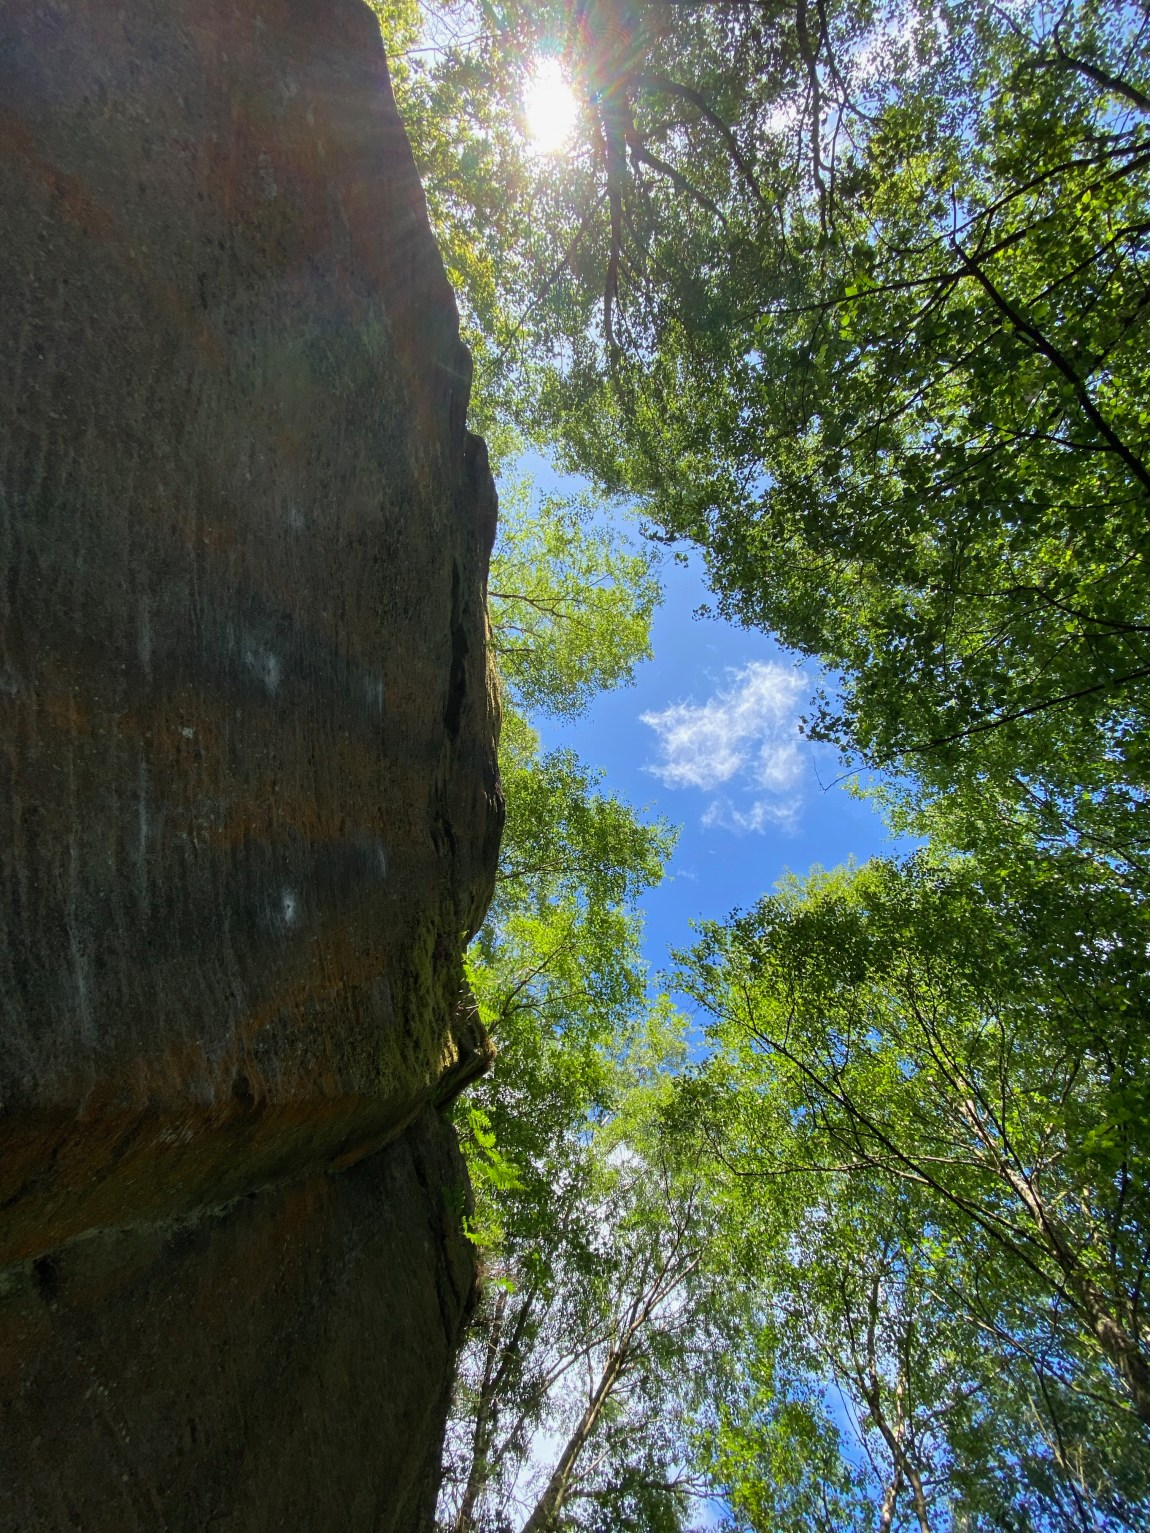 Looking up at sky with boulder